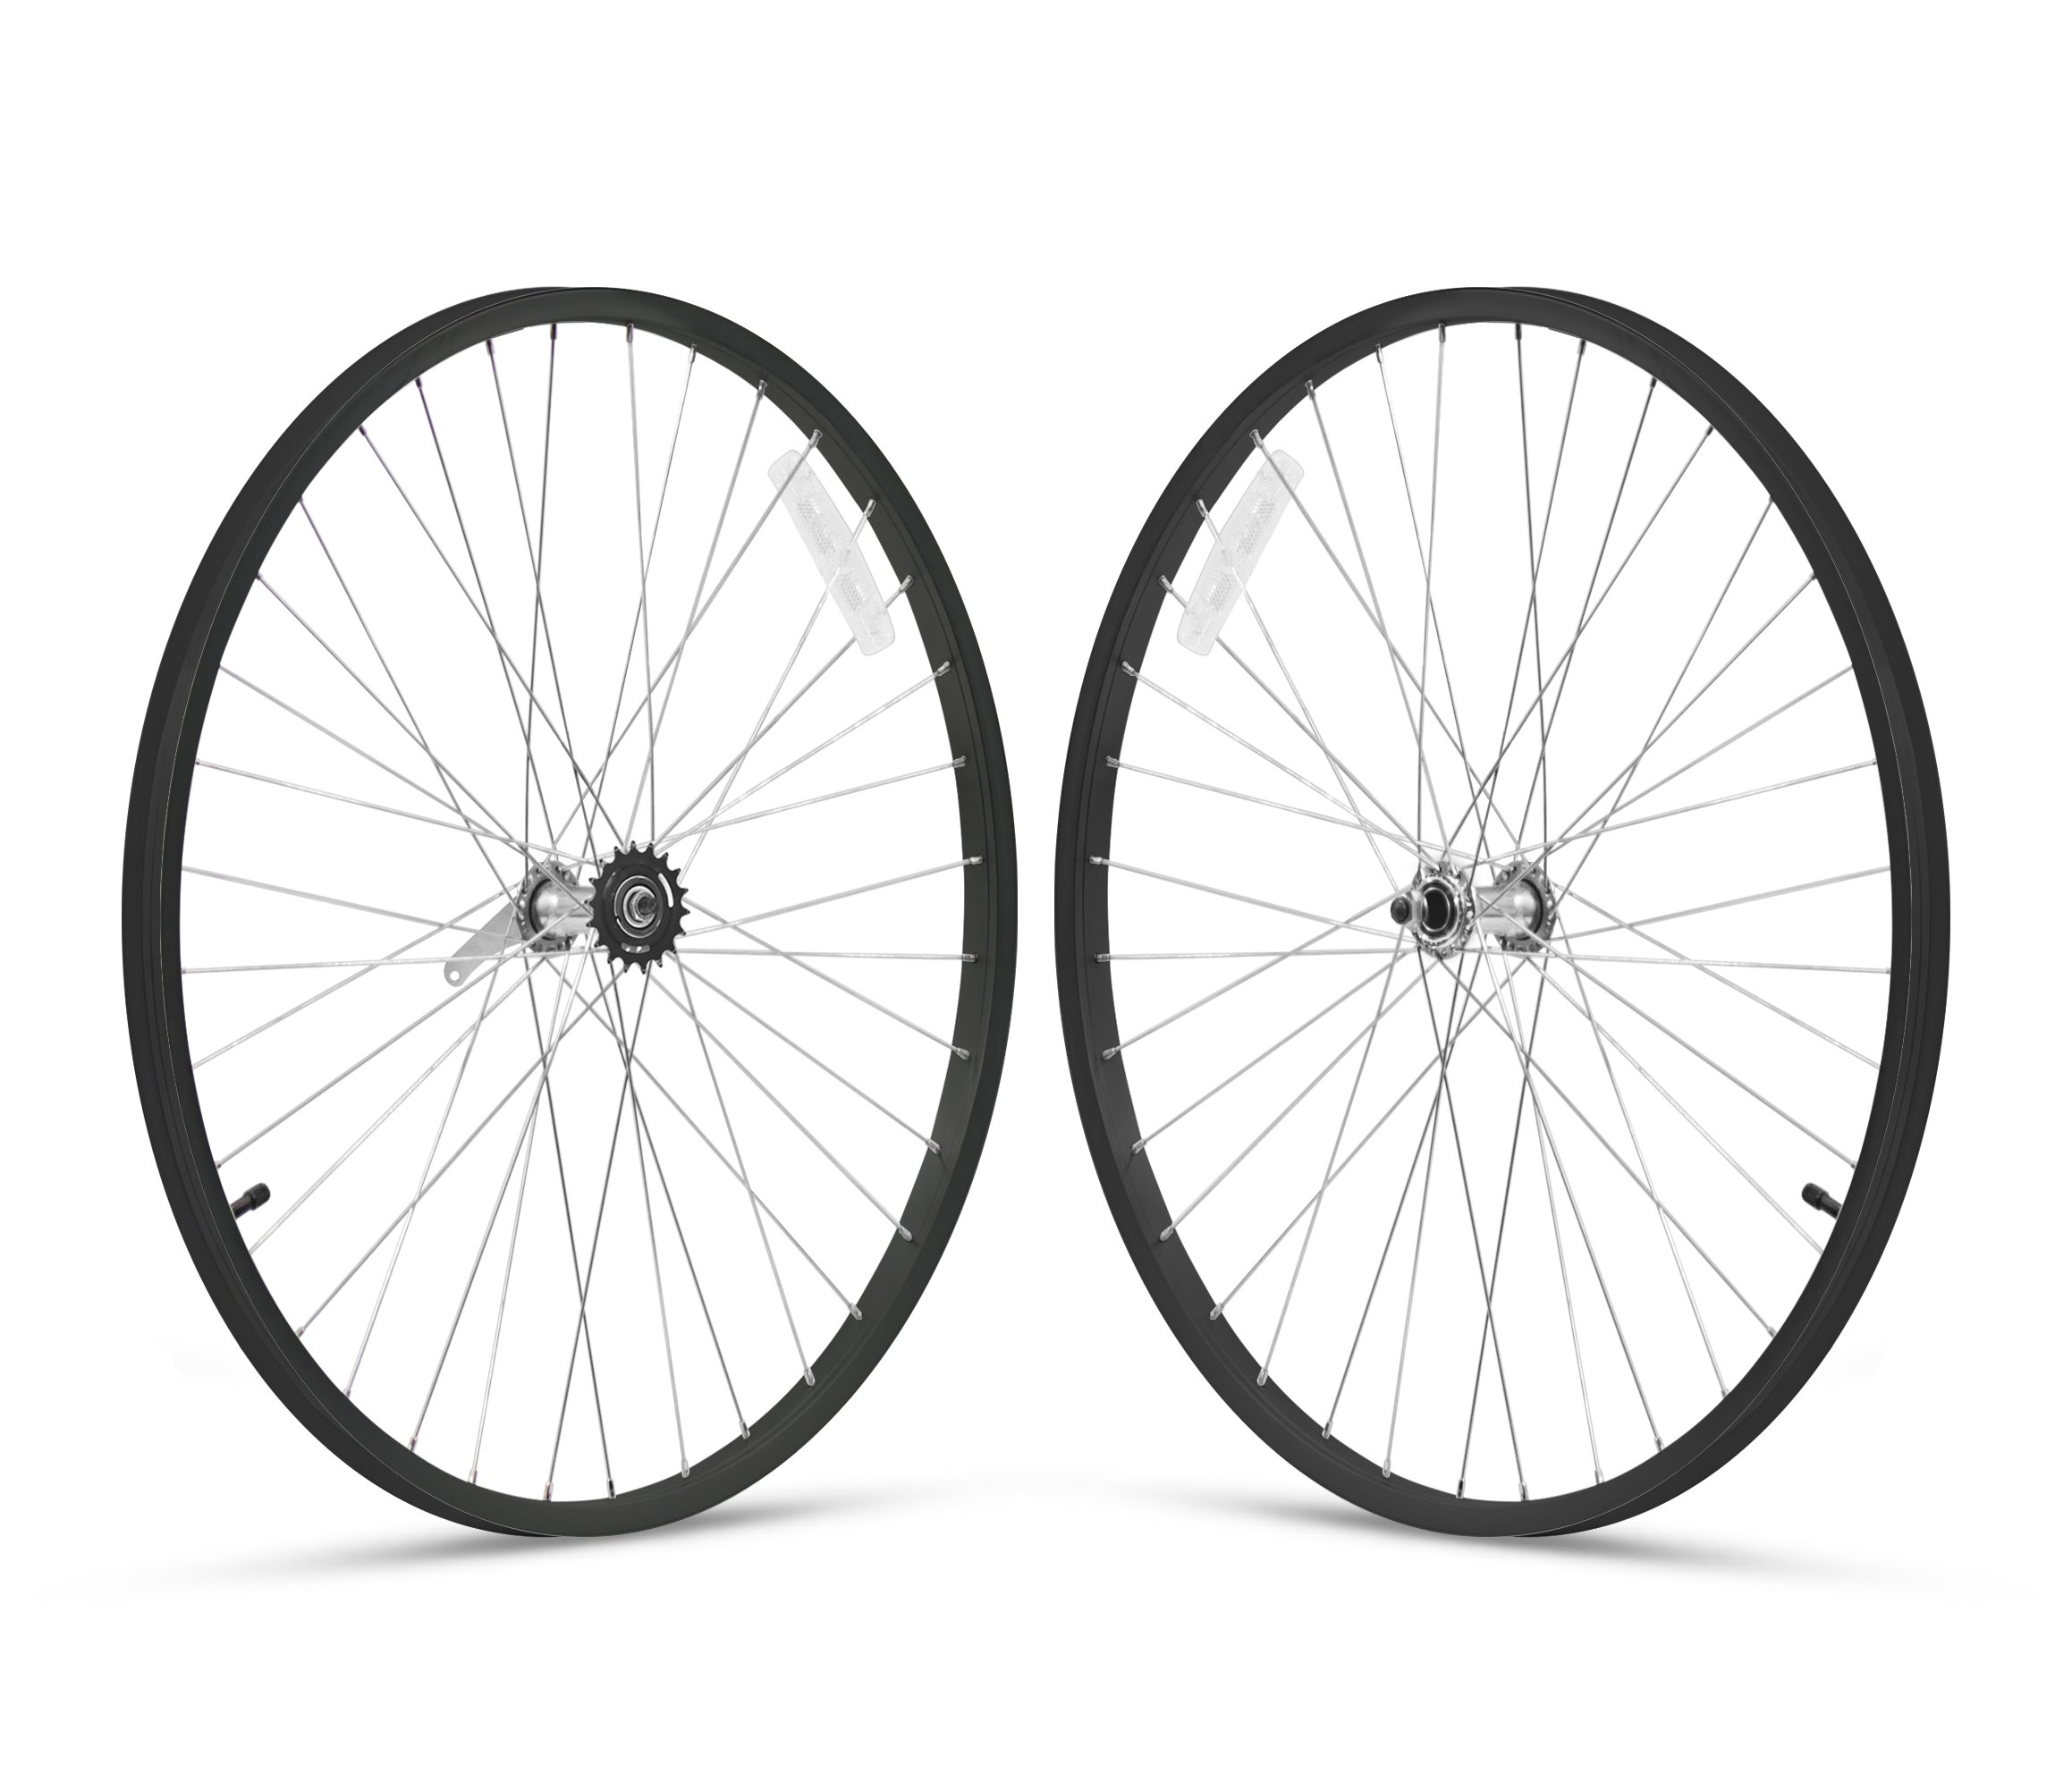 Firmstrong 1-Speed Beach Cruiser Bicycle Wheelset, Front/Rear, Black, 26'' by Firmstrong